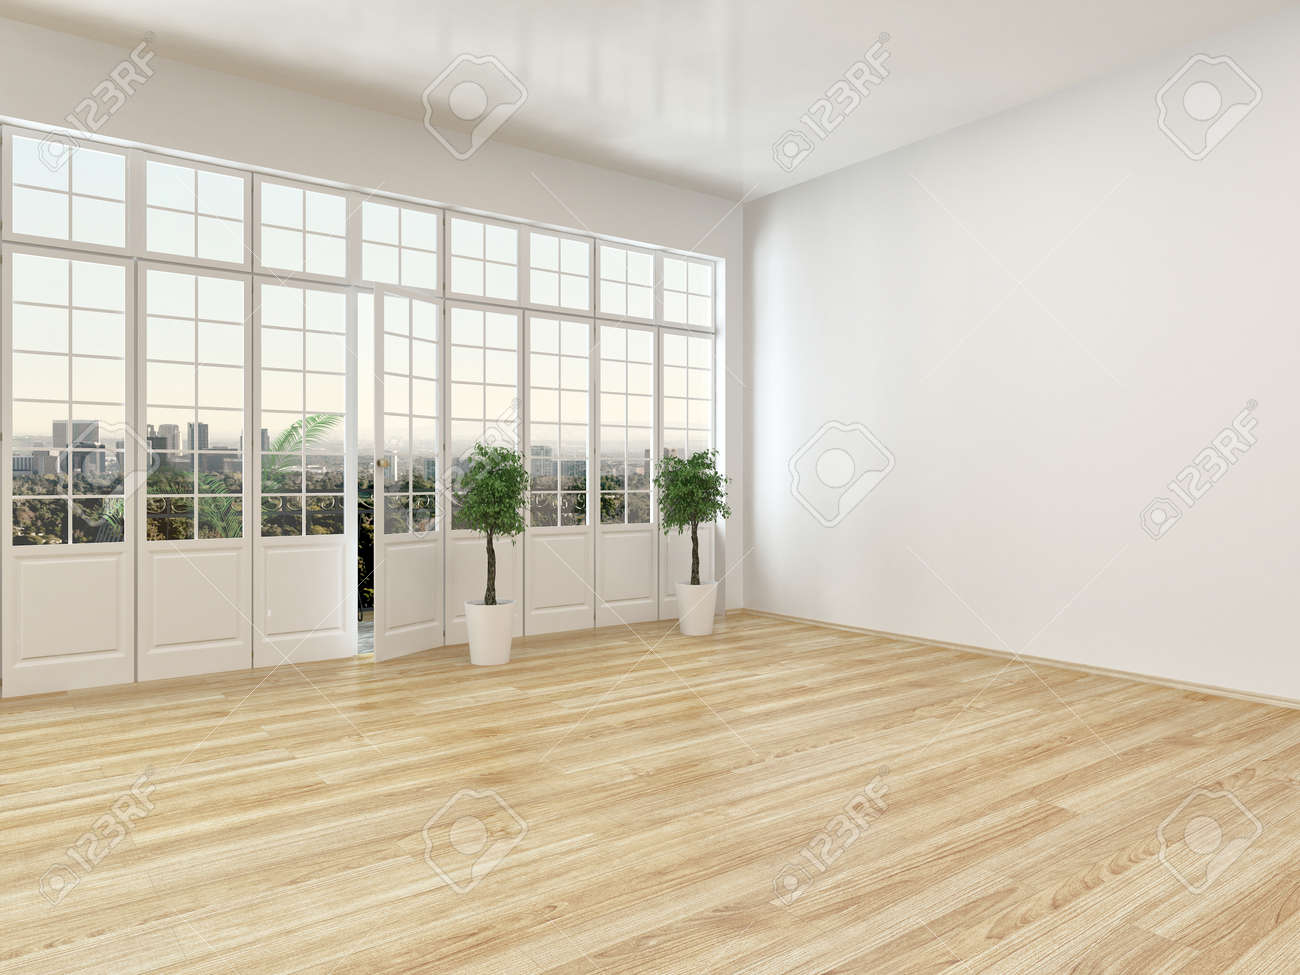 Empty Living Room Interior With Parquet Floor And A Large Panoramic View Window Door